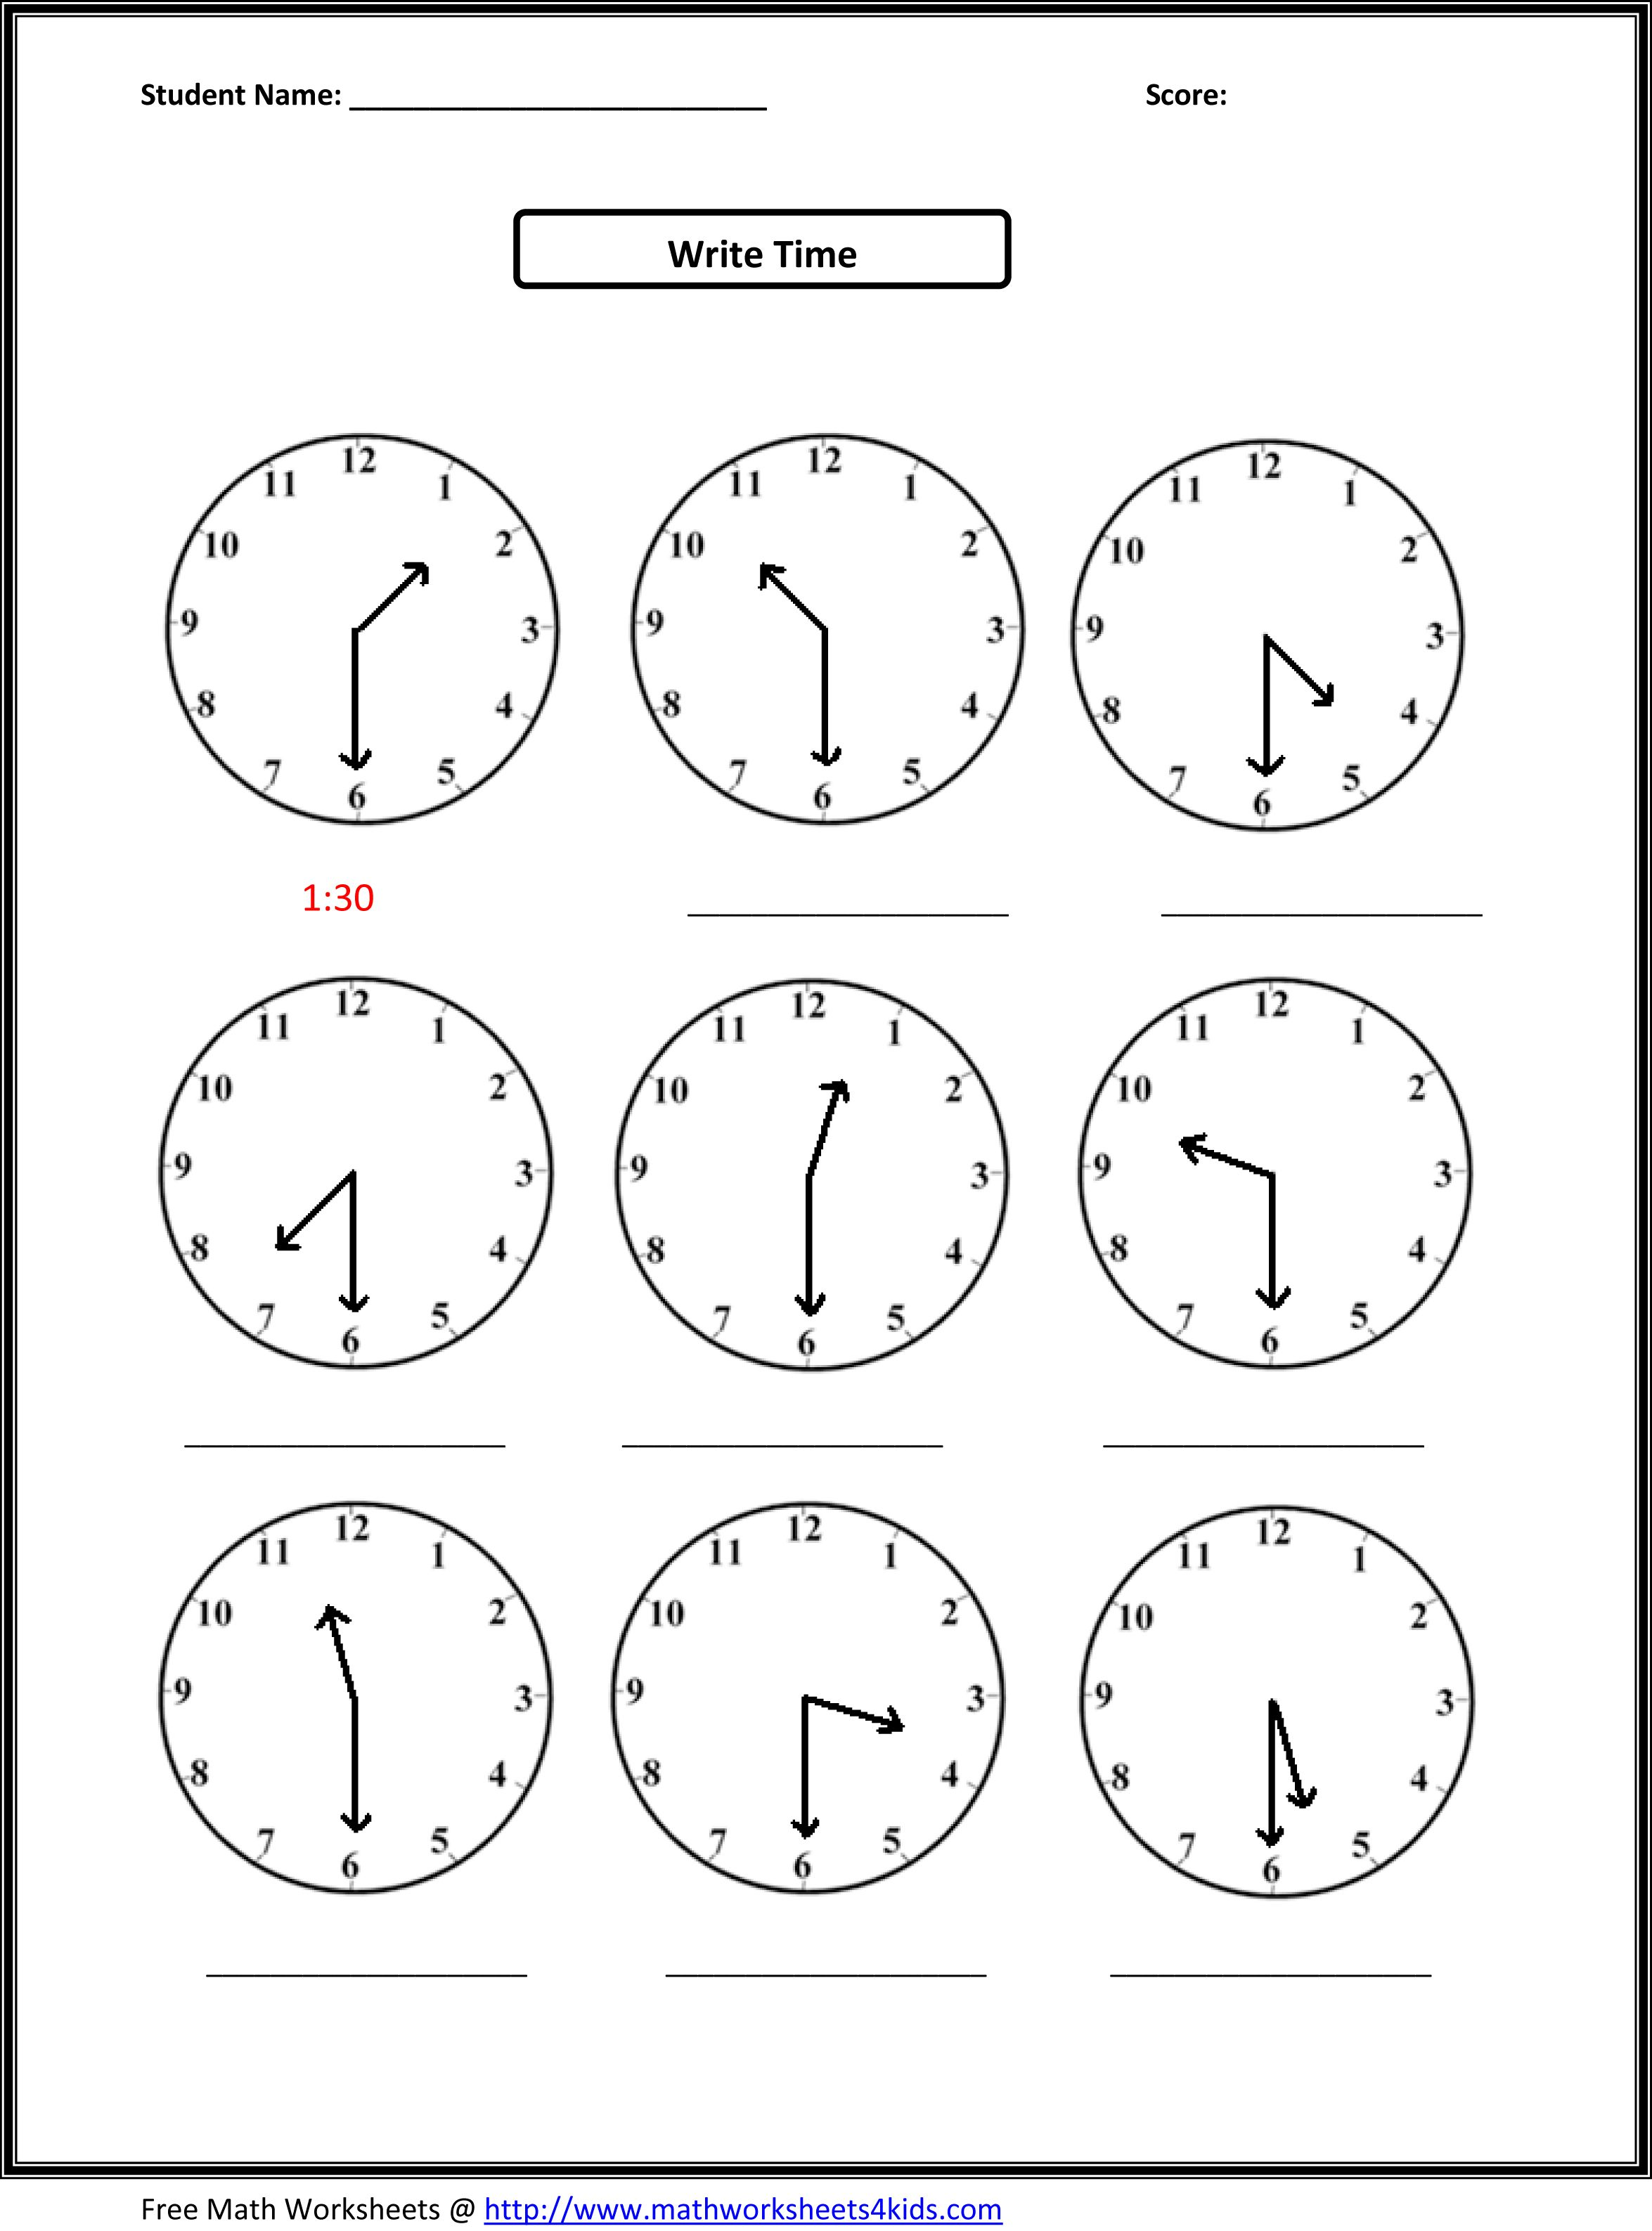 Weirdmailus  Gorgeous Worksheet On Time For Grade   Reocurent With Fetching Free Printable Telling Time Worksheets Nd Grade  Reocurent With Breathtaking Free Multiplication Printable Worksheets Also English Worksheet For Grade  In Addition Past Perfect Tense Worksheets Printable And Integer Worksheets Grade  As Well As Helping Verb Worksheets Th Grade Additionally Storytelling Worksheets From Reocurentcom With Weirdmailus  Fetching Worksheet On Time For Grade   Reocurent With Breathtaking Free Printable Telling Time Worksheets Nd Grade  Reocurent And Gorgeous Free Multiplication Printable Worksheets Also English Worksheet For Grade  In Addition Past Perfect Tense Worksheets Printable From Reocurentcom